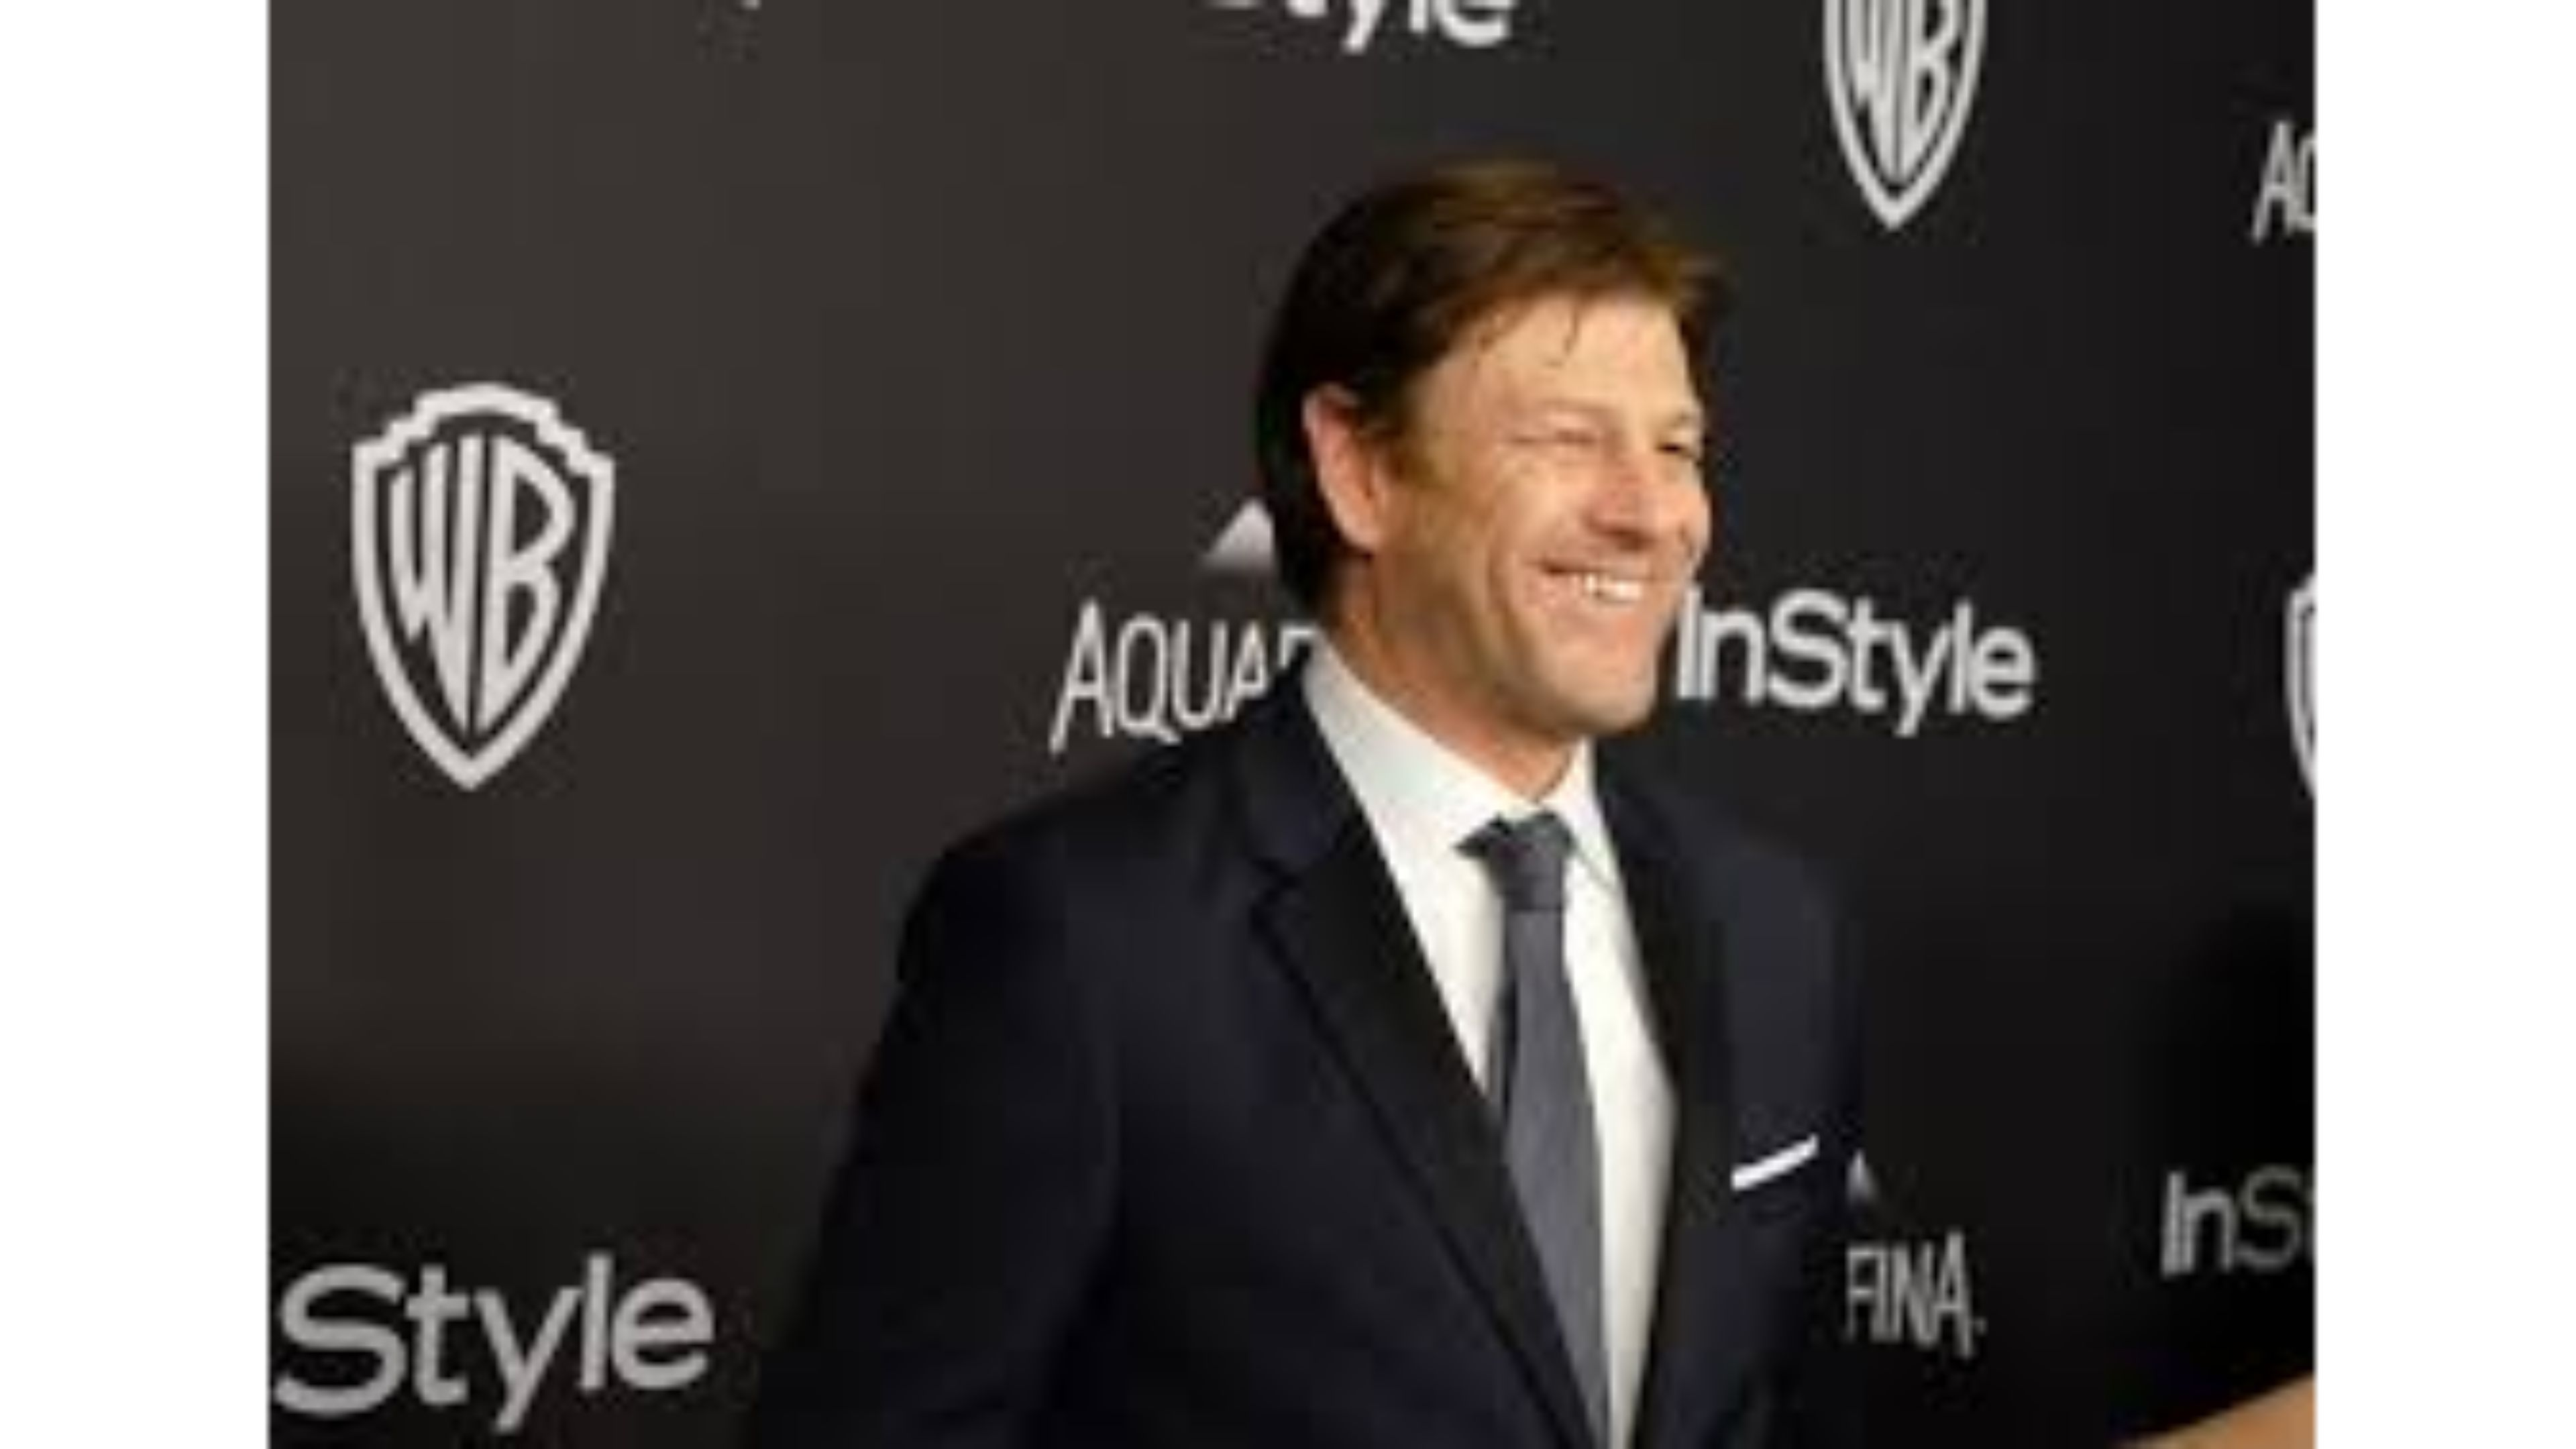 awesome photos of sean bean actor hd desktop background download